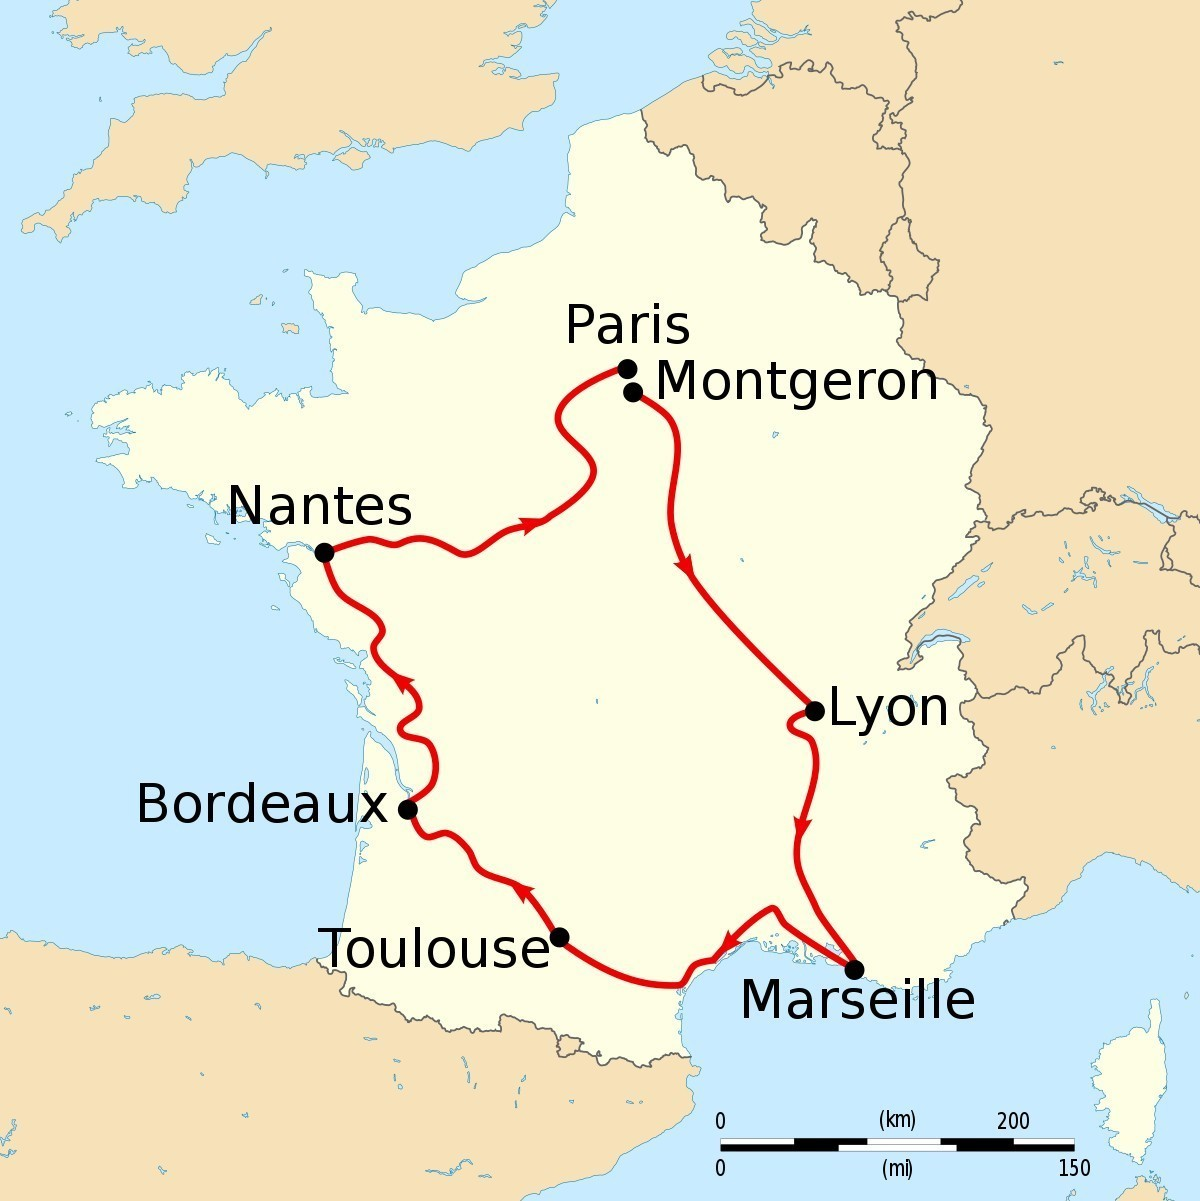 Outline Political Map Of France.On The Outline Map Of France Locate The Following Places A Nantes